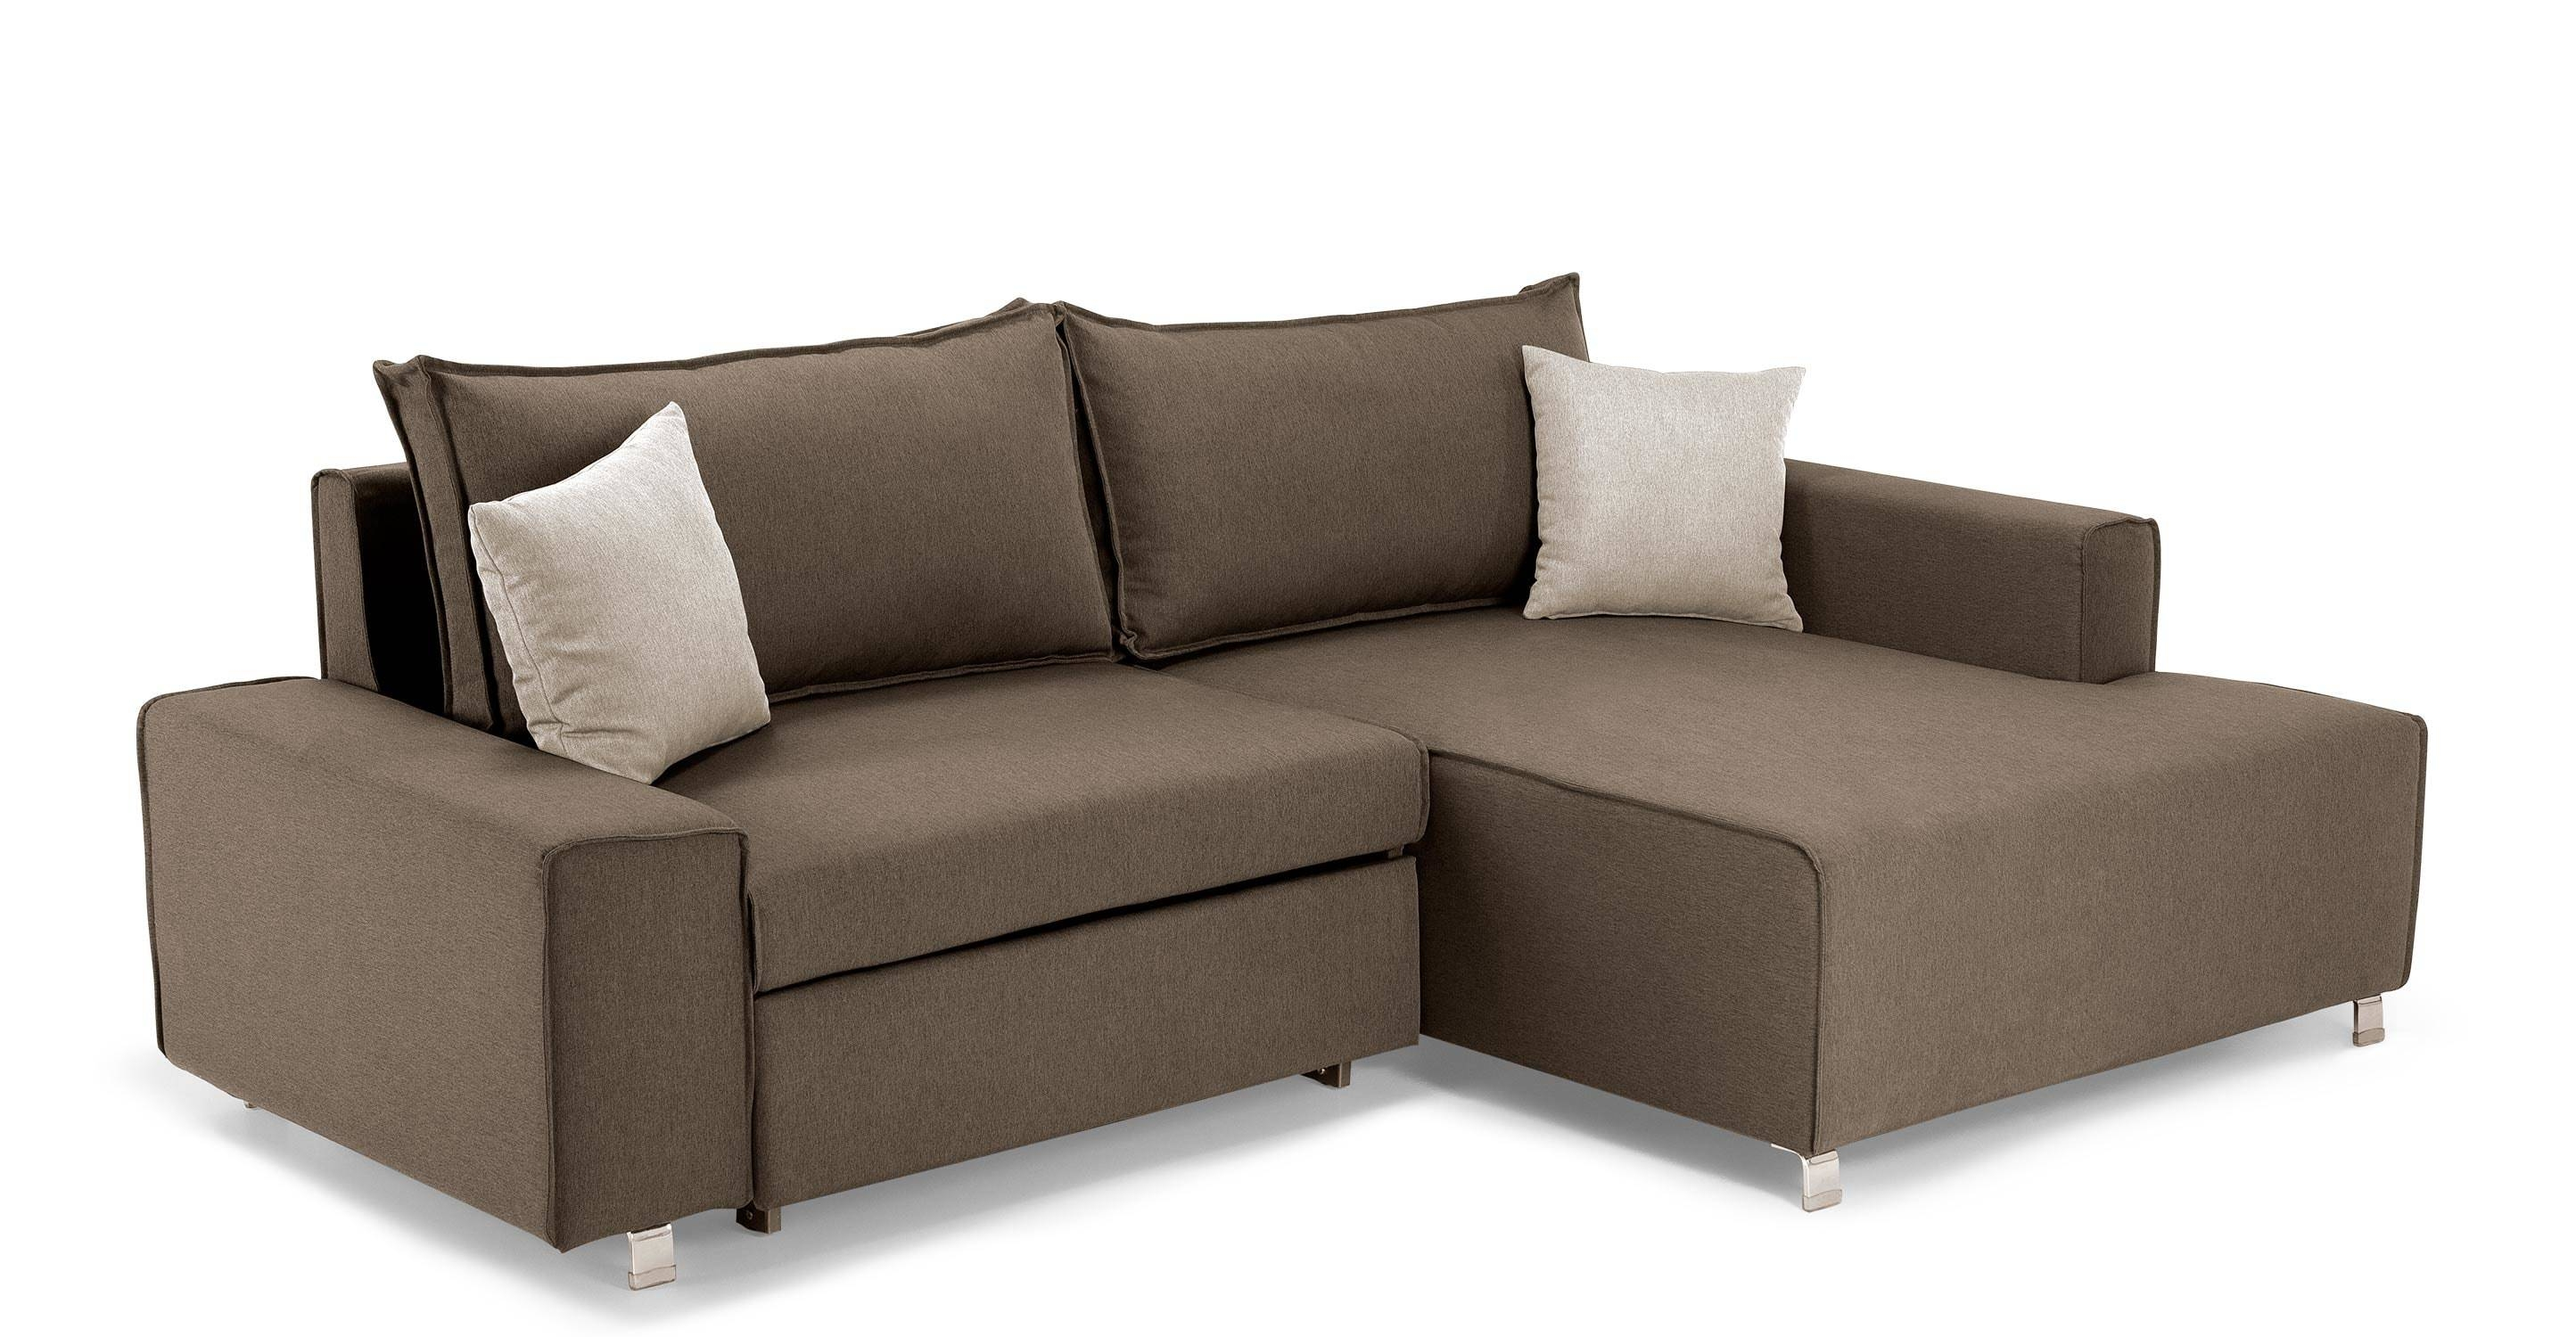 Sofas Center : Corner Sofa Beds Uk Cheap Birminghamcorner For with Cheap Corner Sofa (Image 26 of 30)